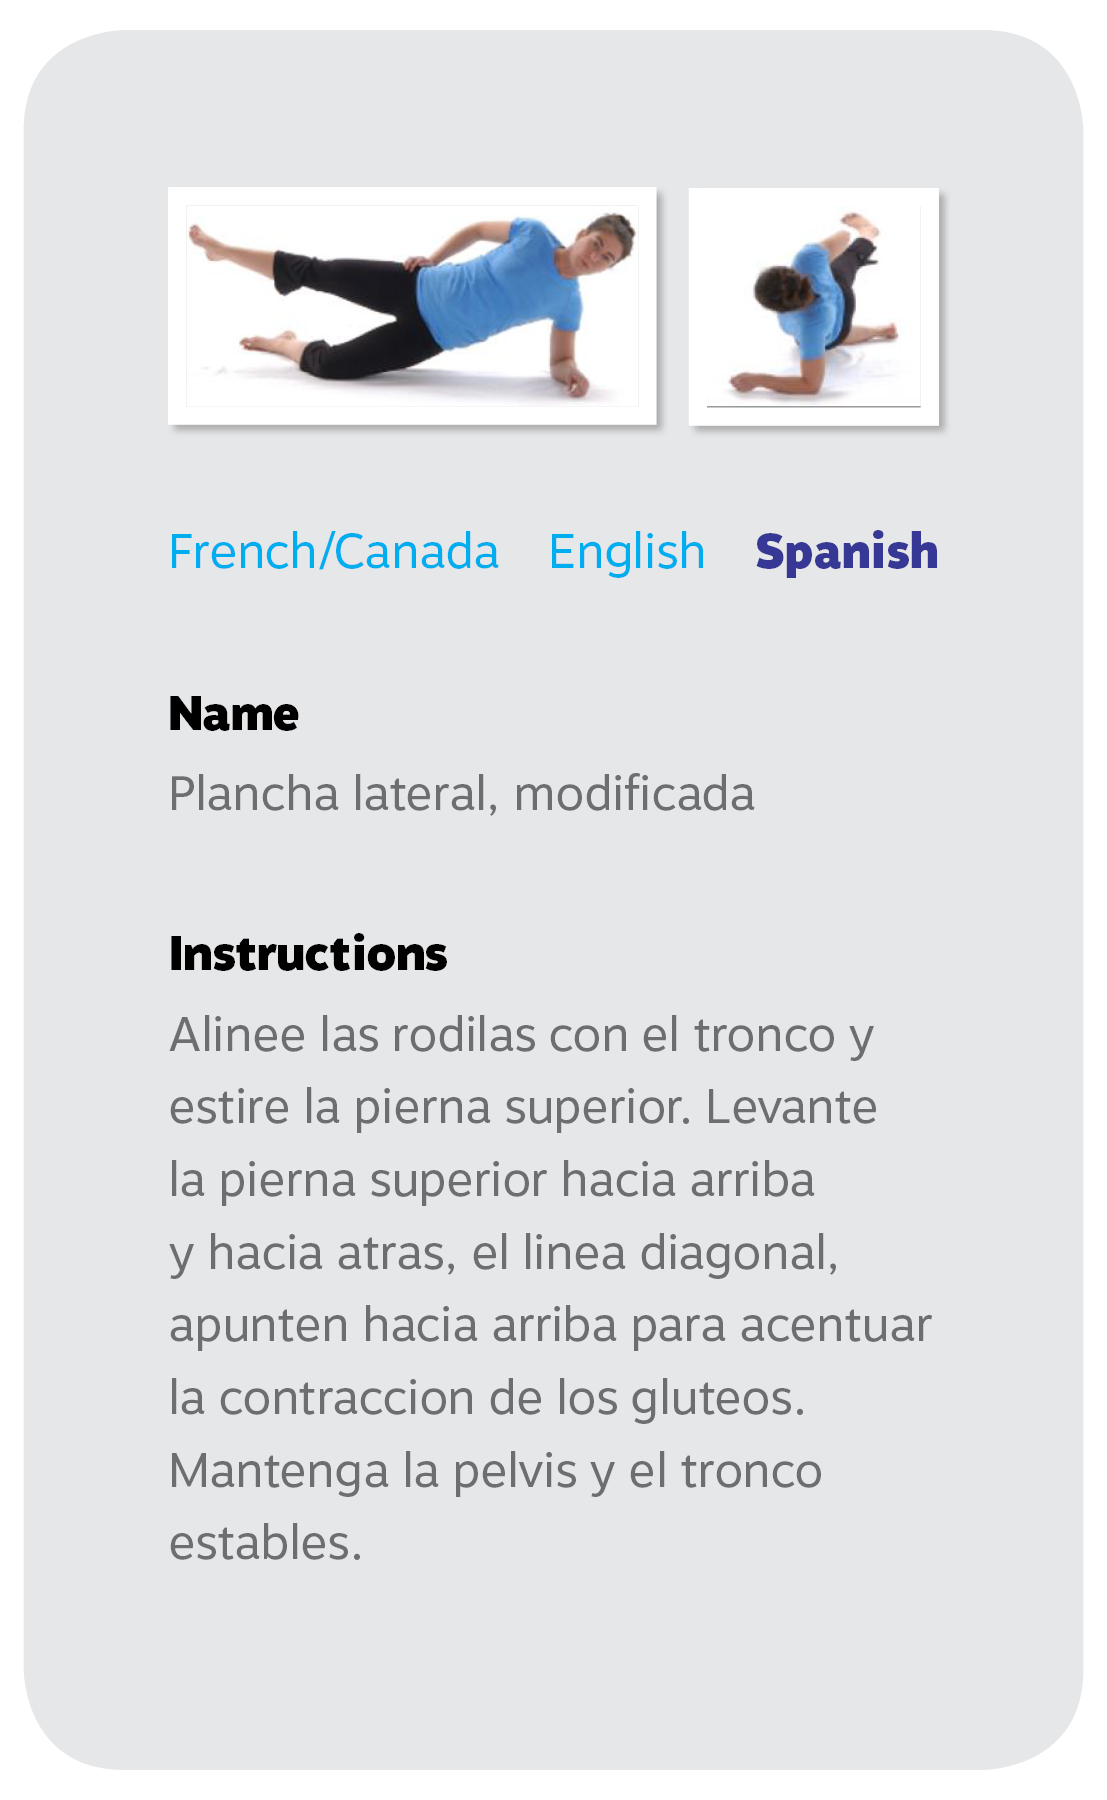 Content Available in English, Spanish and French